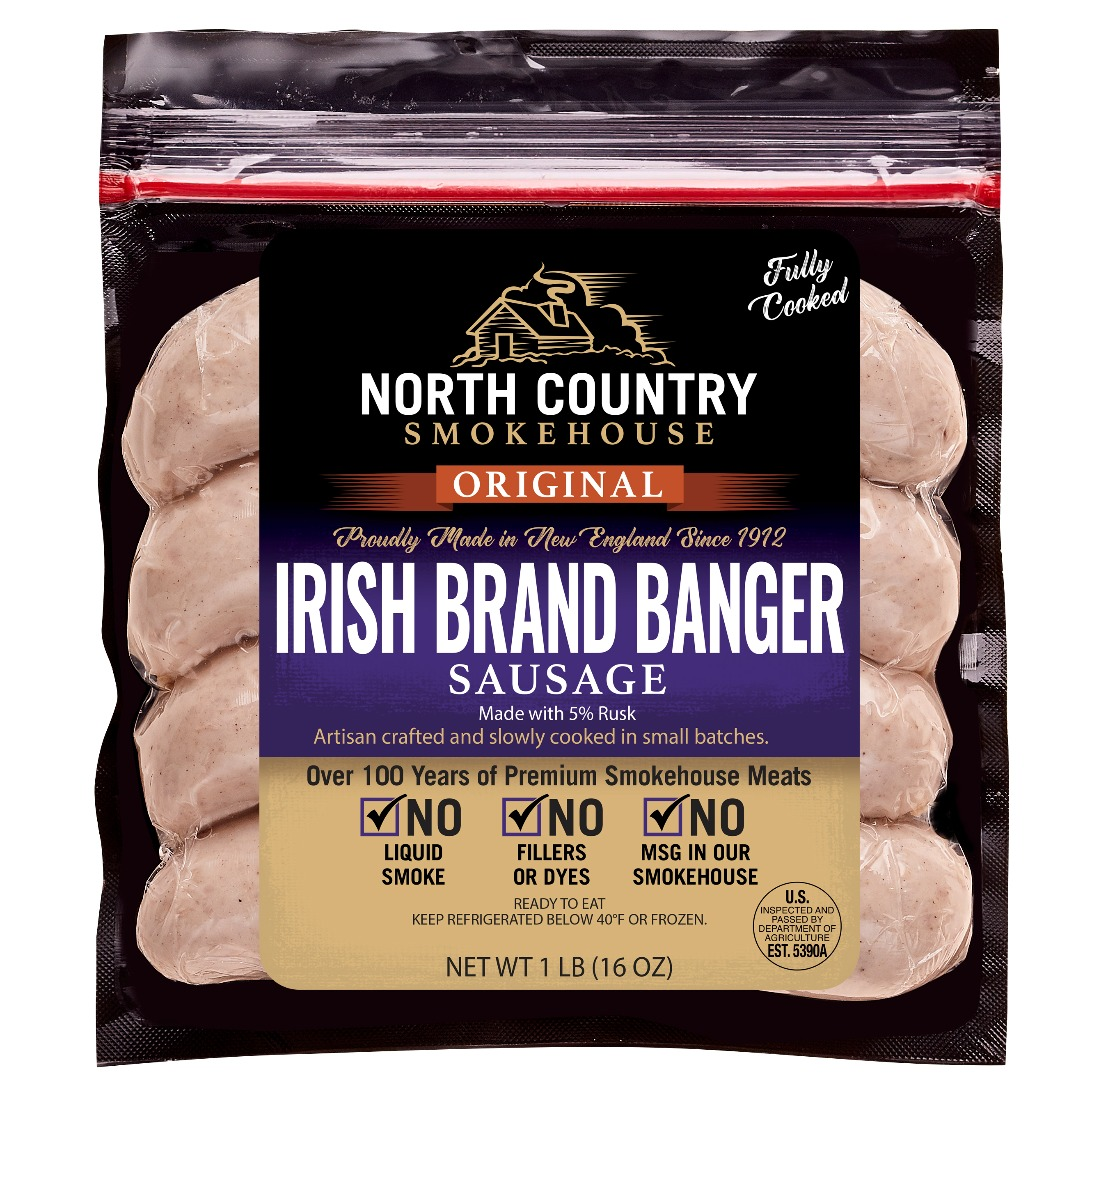 Original Irish Style Banger Sausages - 3, 1 lb. packages